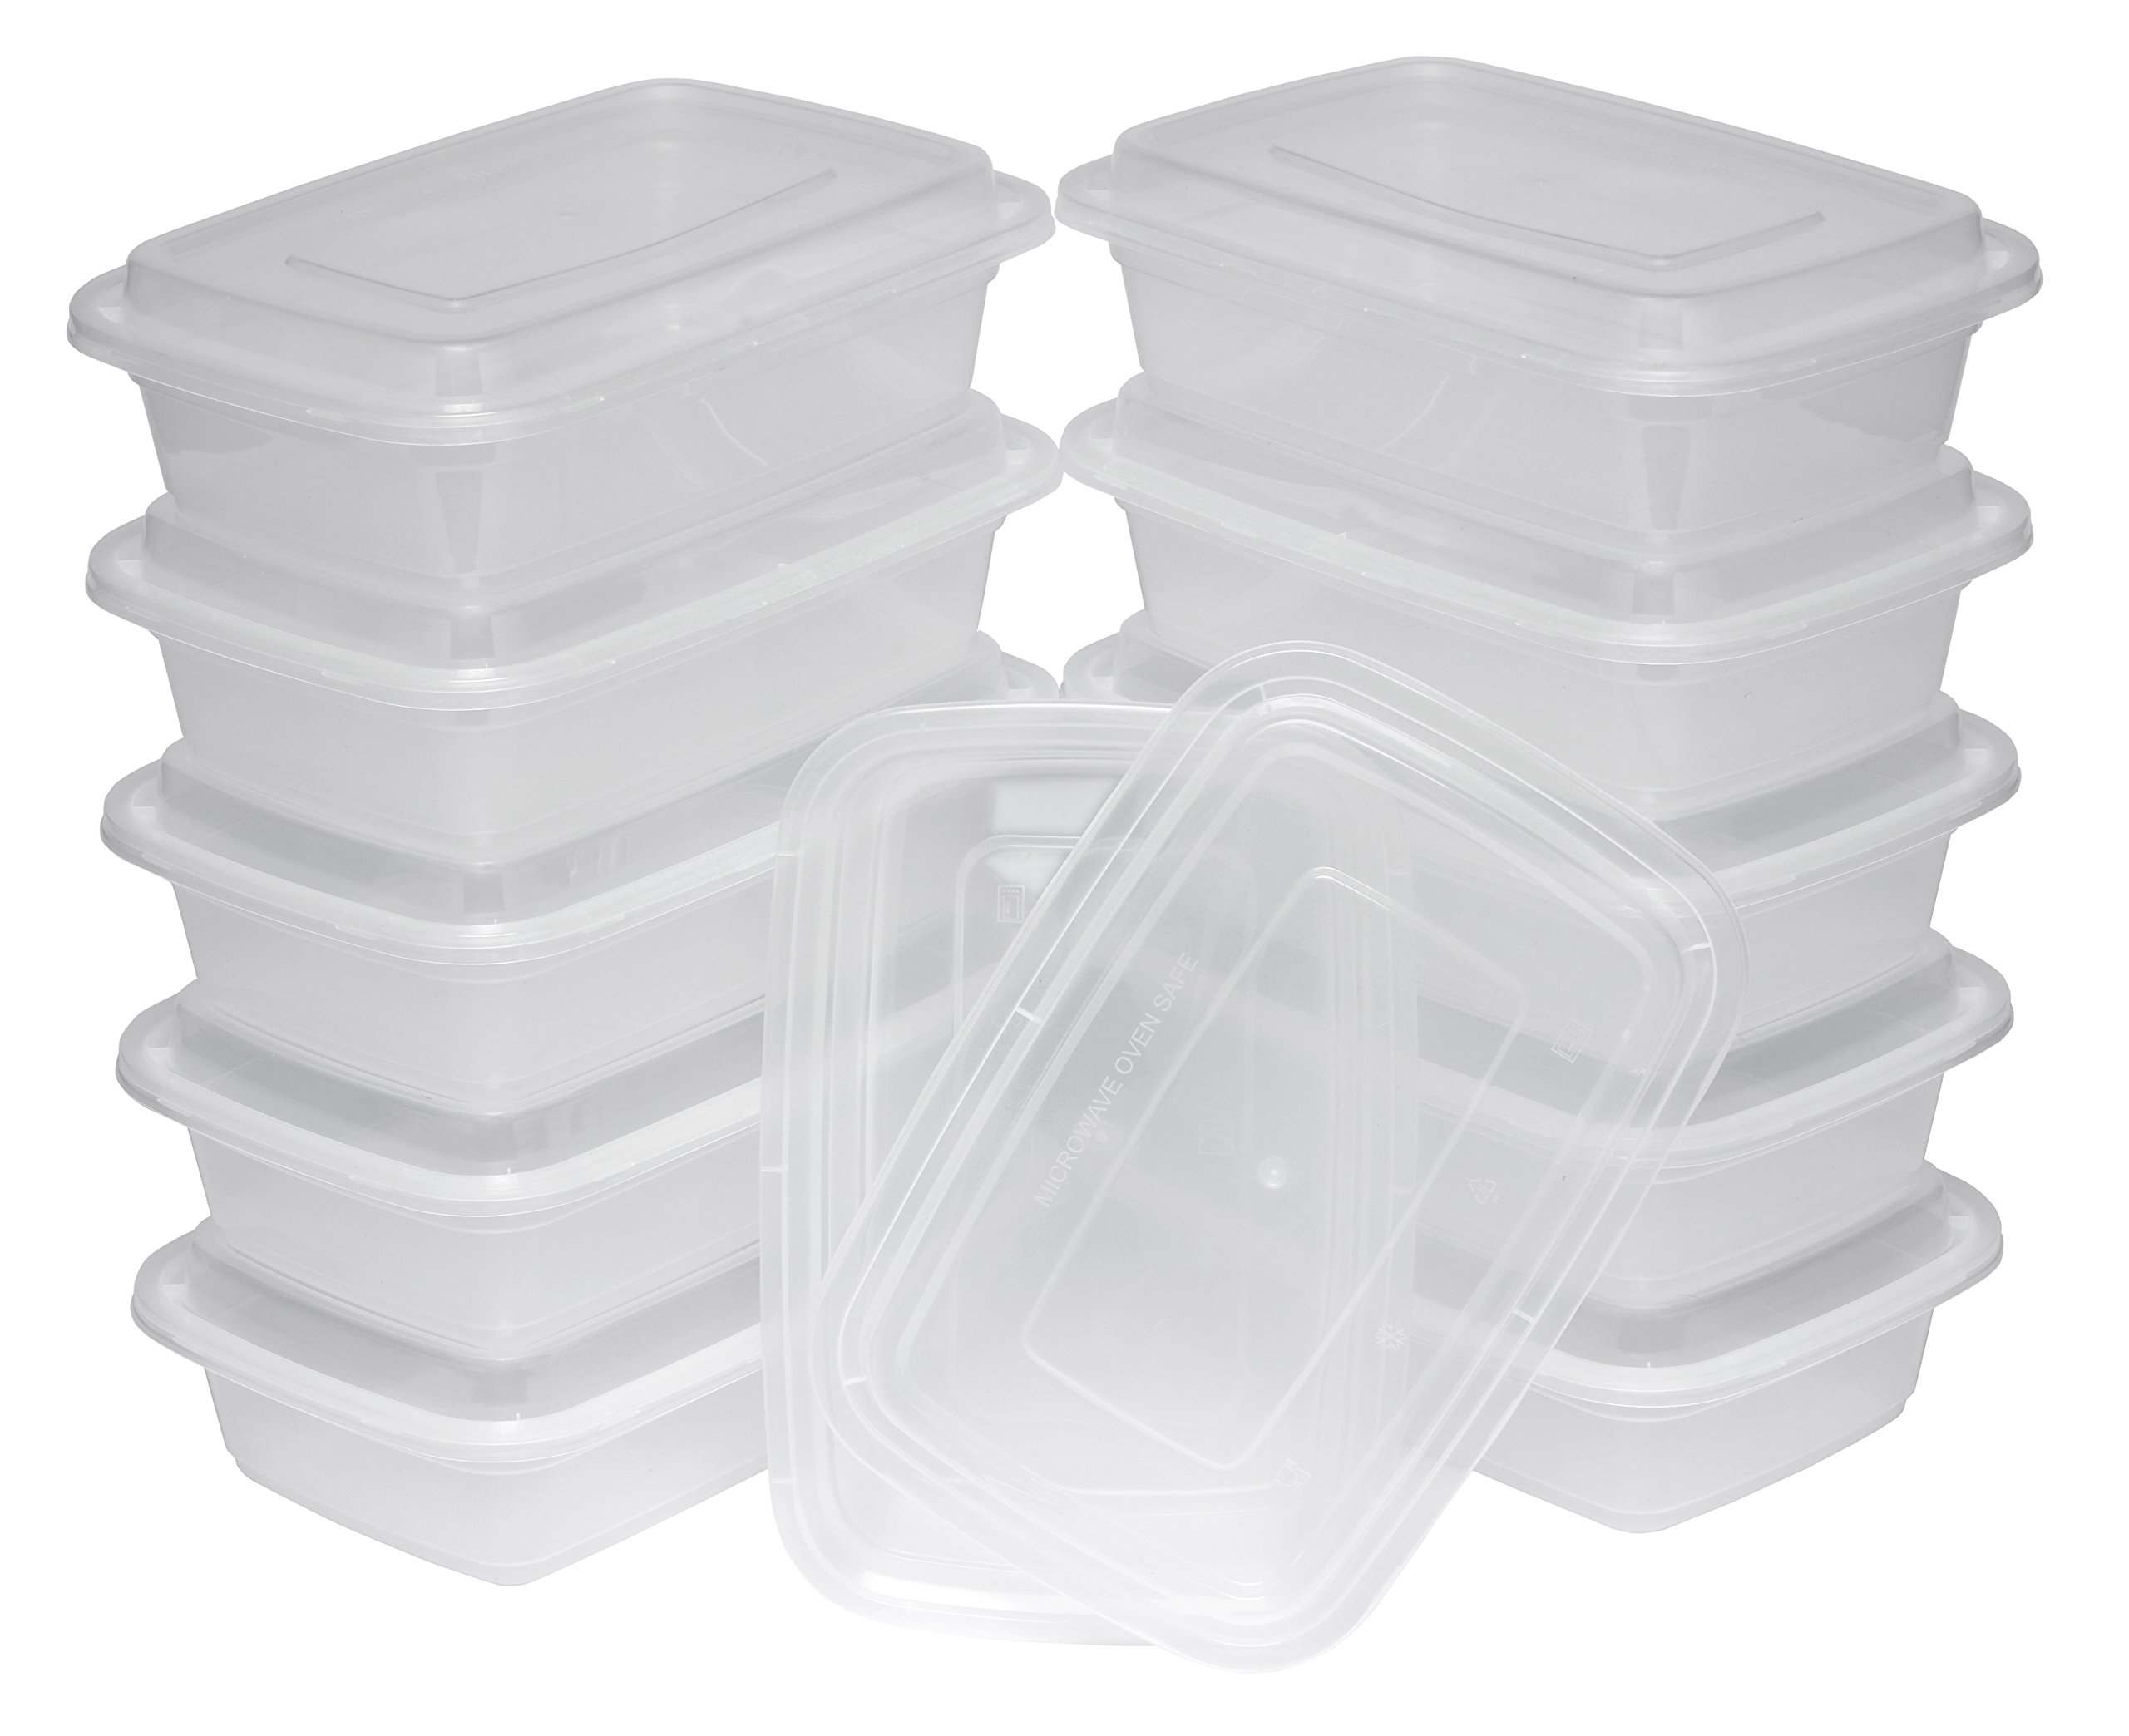 TTG 300-Pack Bento Lunch Boxes with Lids (1 Compartment/ 32 oz) | Microwaveable, Dishwasher & Freezer Safe Meal Prep Container | Reusable Dish Set for Prepping, Portion Control & More (Opaque White) by Table To Go (Image #1)